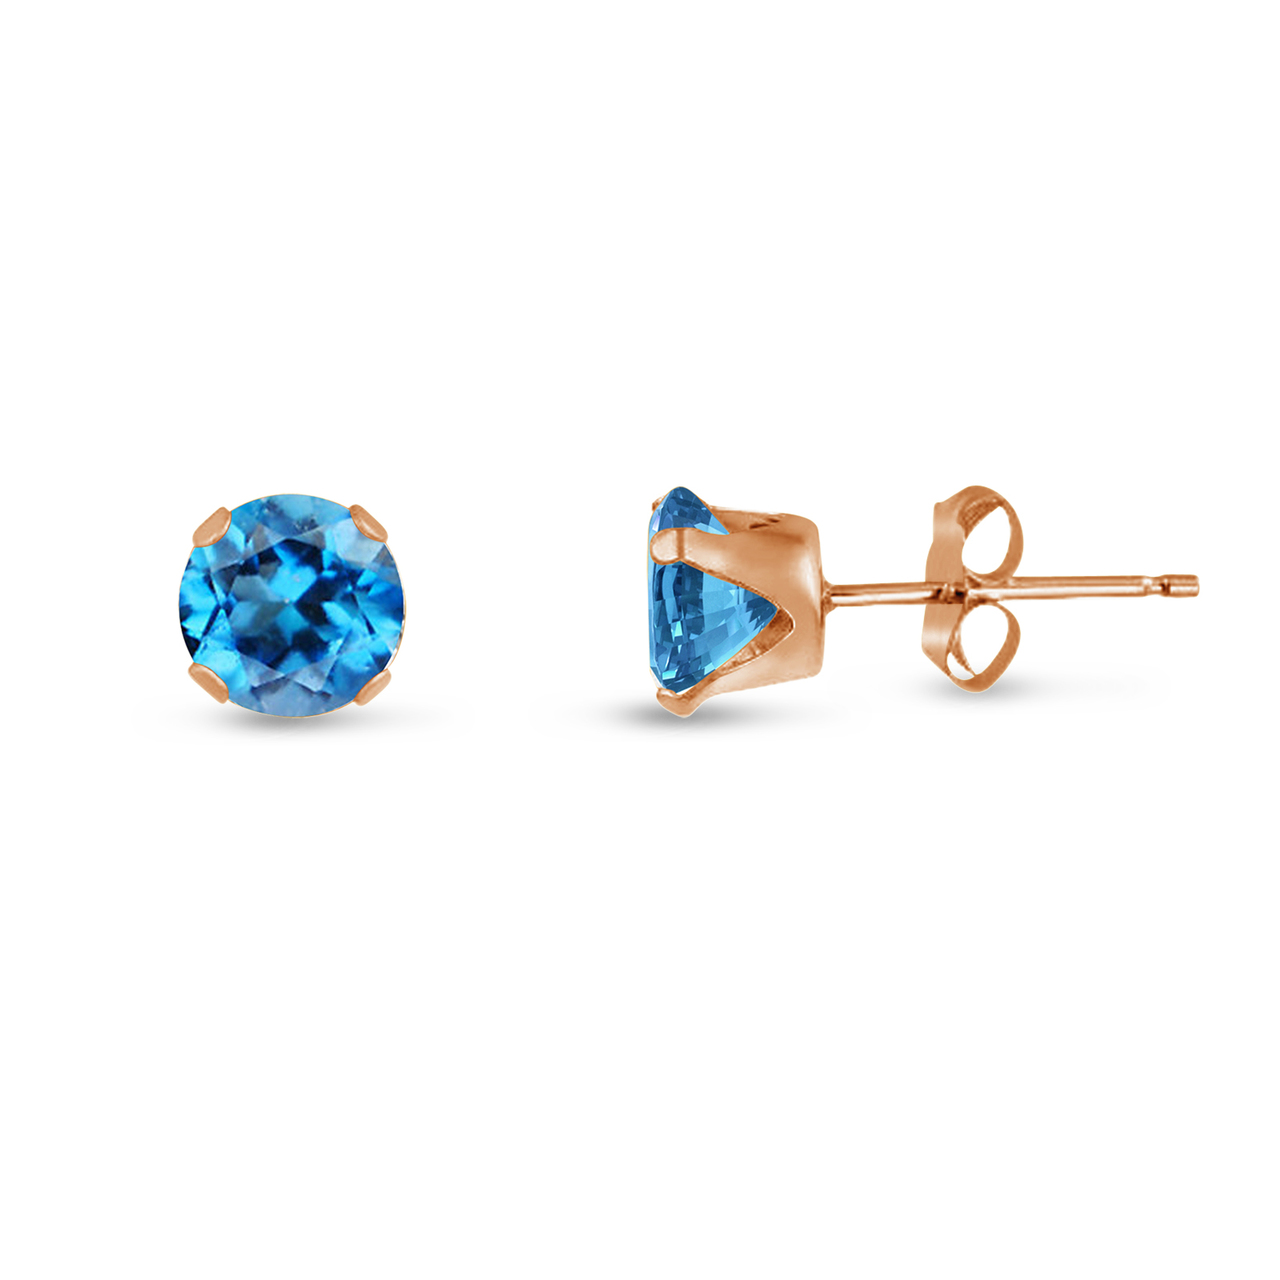 87f9b1806 Genuine Swiss Blue Topaz Round Stud Earrings in Rose Gold over Silver